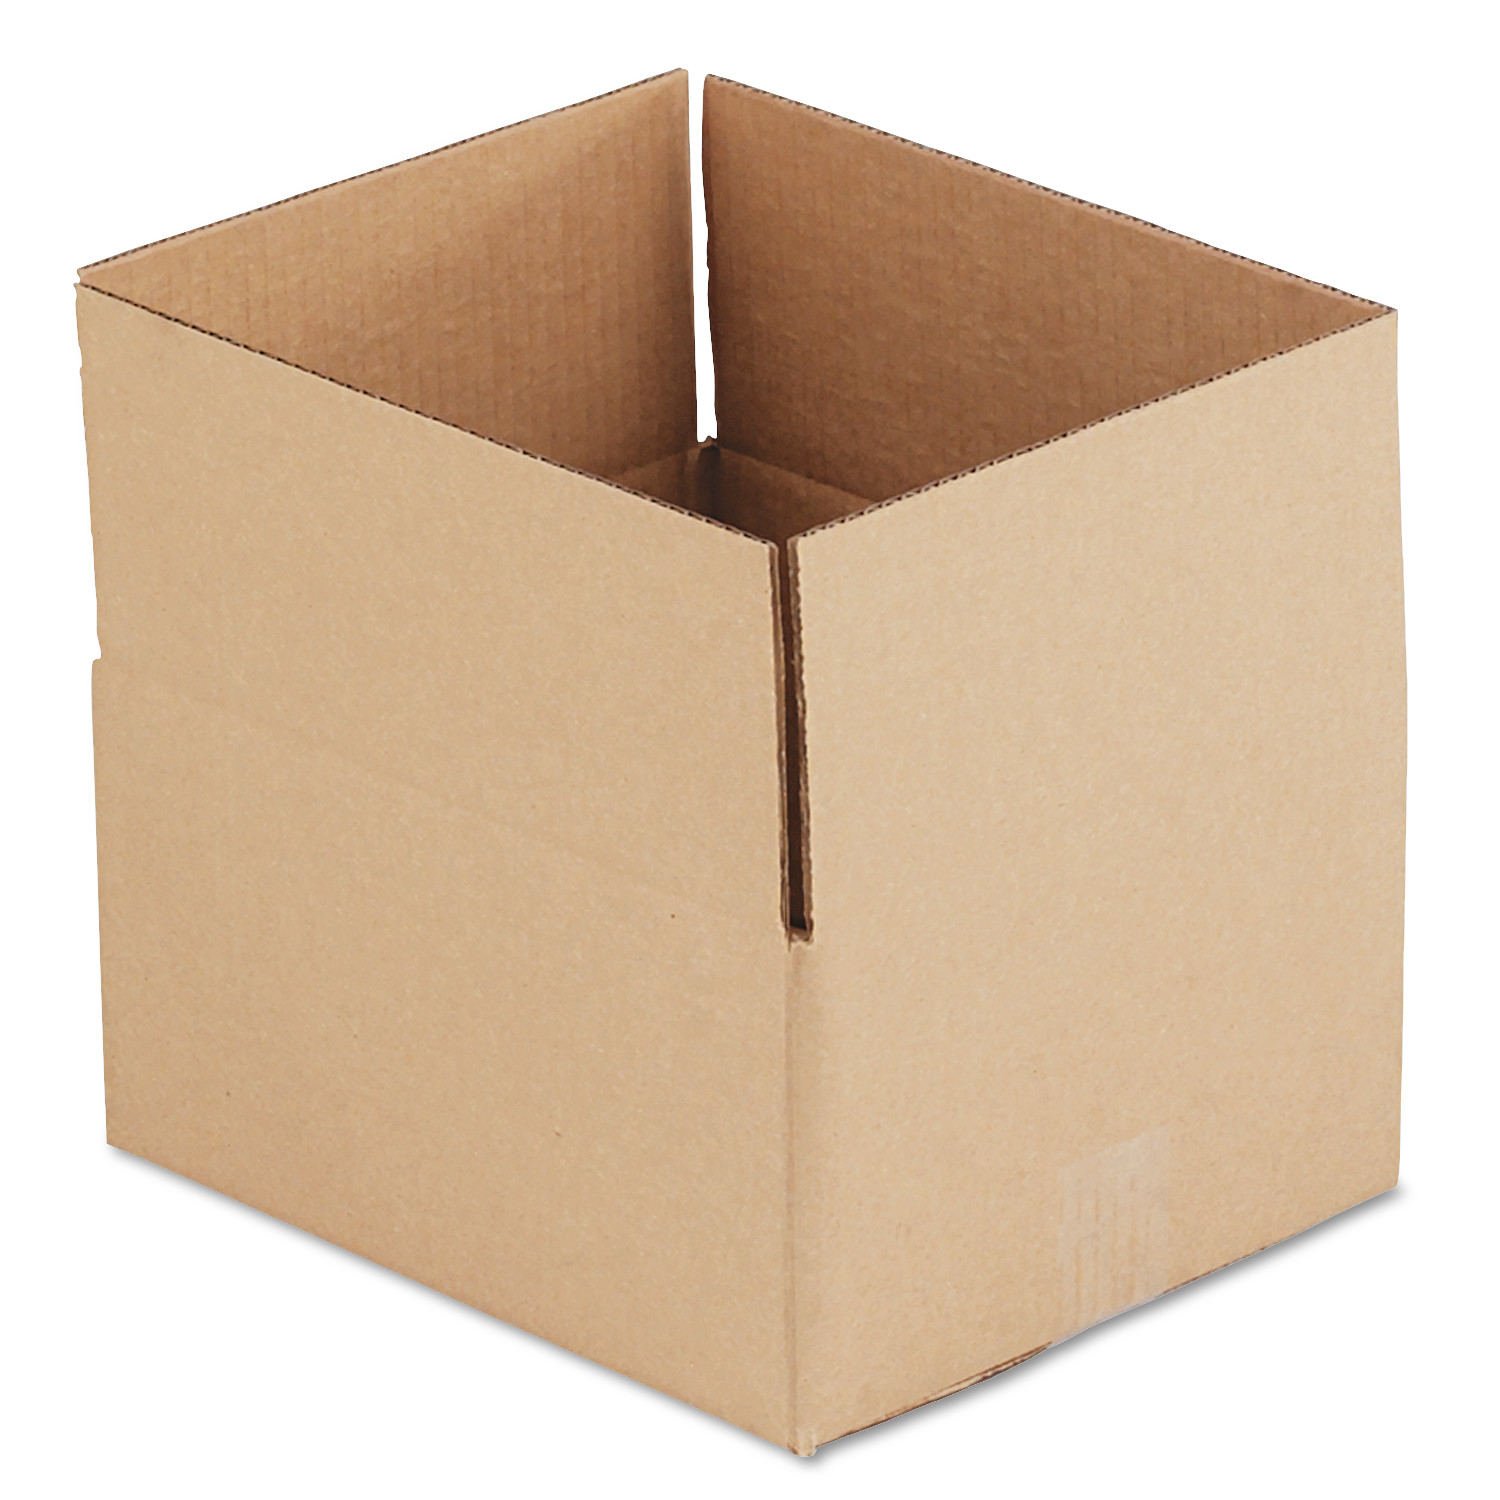 General Supply Brown Corrugated - Fixed-Depth Shipping Boxes, 12l x 10w x 6h, 25/Bundle -UFS12106